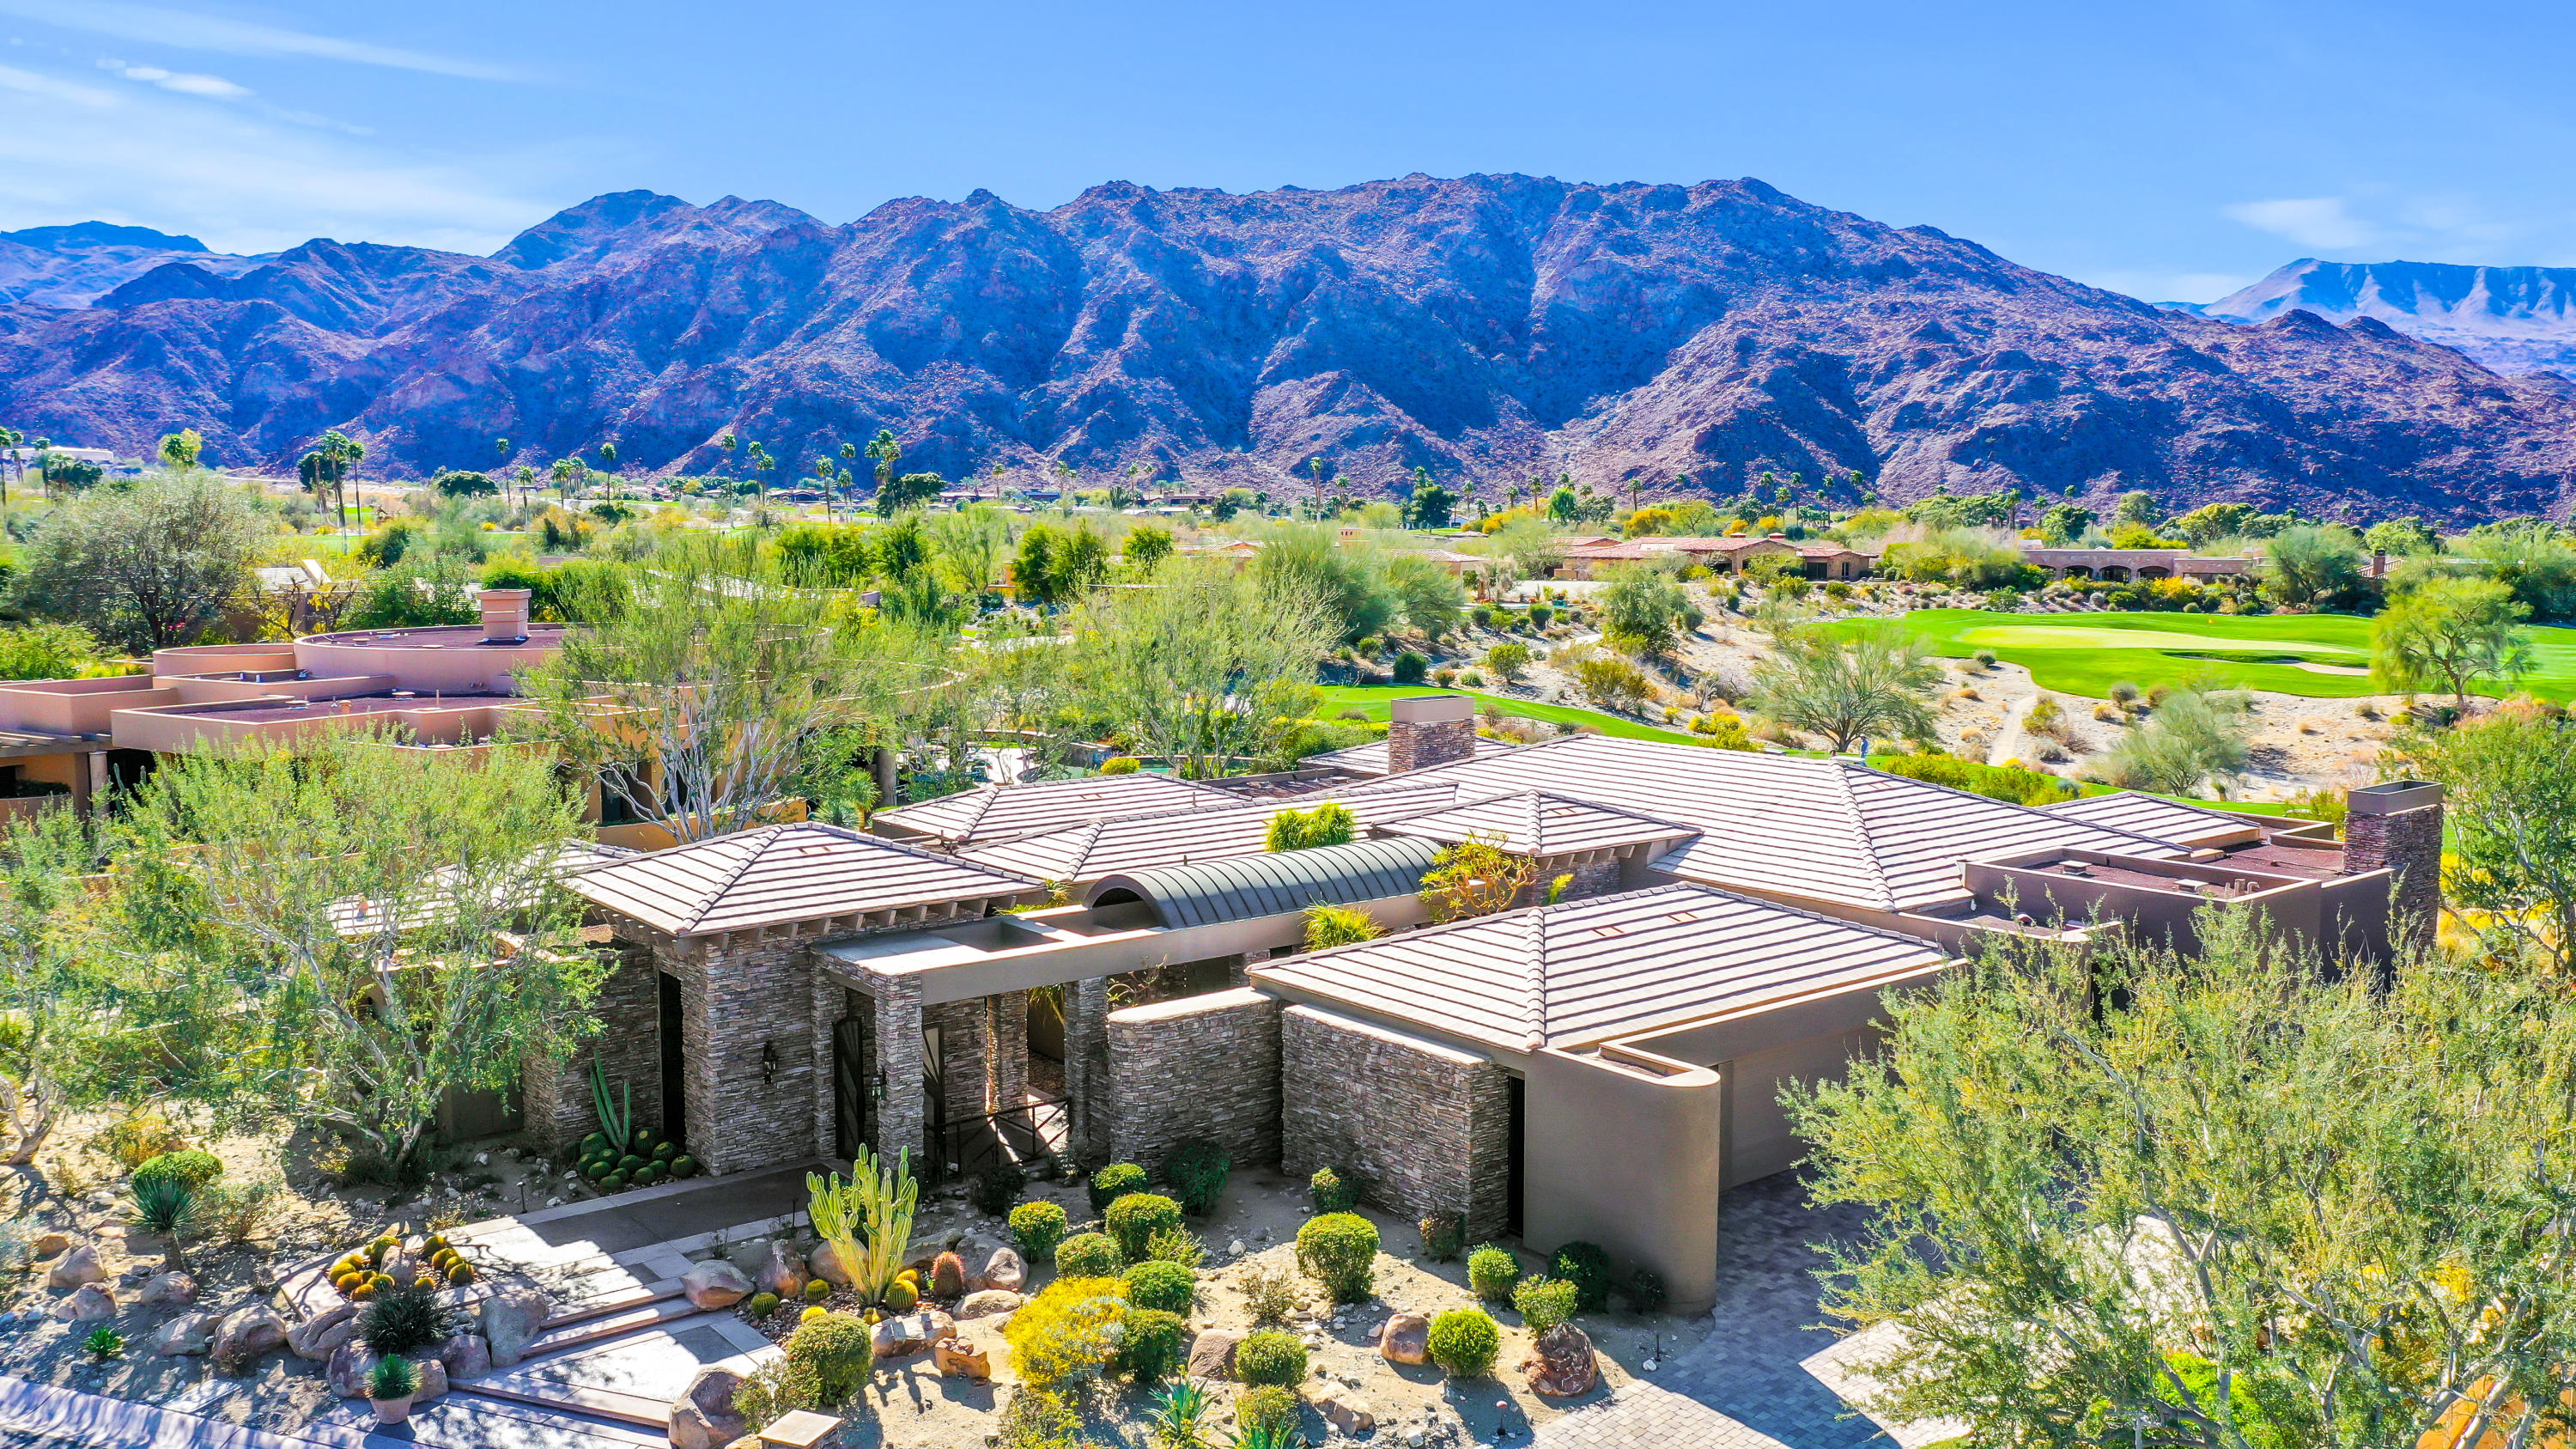 Look no further! This home is the true trifecta! Timeless architectural lines, awe inspiring views, serene and tranquil location. This desert contemporary home designed by renown local firm of Holden & Johnson checks off all the boxes. A modern arched entry greets visitors amid dramatic stacked stone details. Once within the home, one is immediately drawn to the expansive walls of glass revealing a 180 degree sweeping lookout, exposing elevated perspectives from snow capped peaks to the down valley views of the Whitewater windmills. Three bedrooms in the main home will assure there's plenty of space for family gatherings, while special guests will enjoy the privacy of the detached casita, complete with a complimenting sitting room in addition to the homes 4th bedroom and ensuite bath. Despite all of the home's modern comforts, it's tour de force is the rear spacious pool side loggia - complete with outdoor dining, telescoping shade awnings, plenty of leisure lounging space, climate controlling overhead gas heat and a conveniently positioned built-in BBQ off the kitchen.